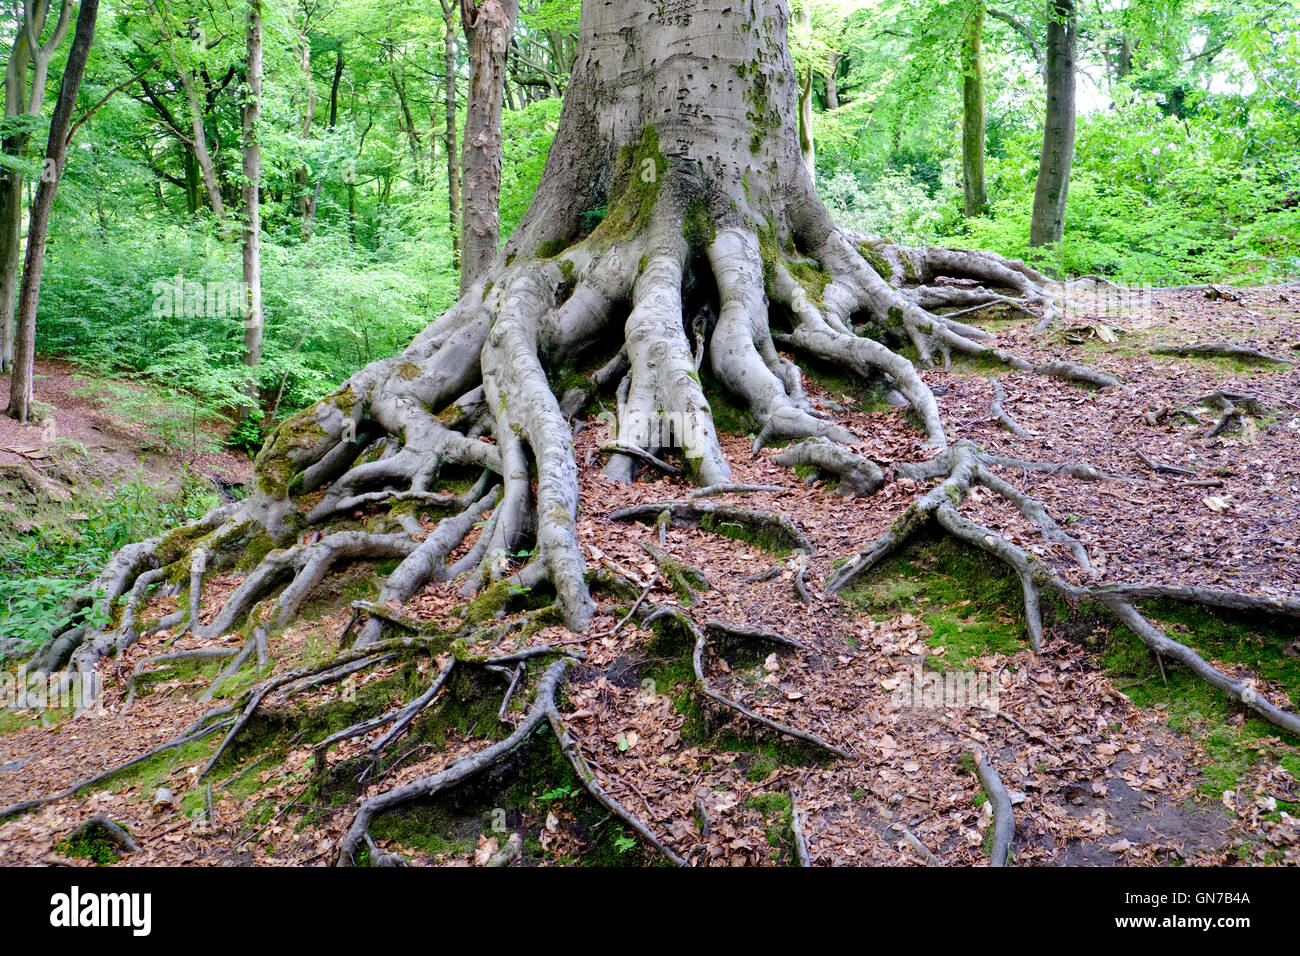 Tree roots in Smithills Hall gardens, Bolton, UK - Stock Image